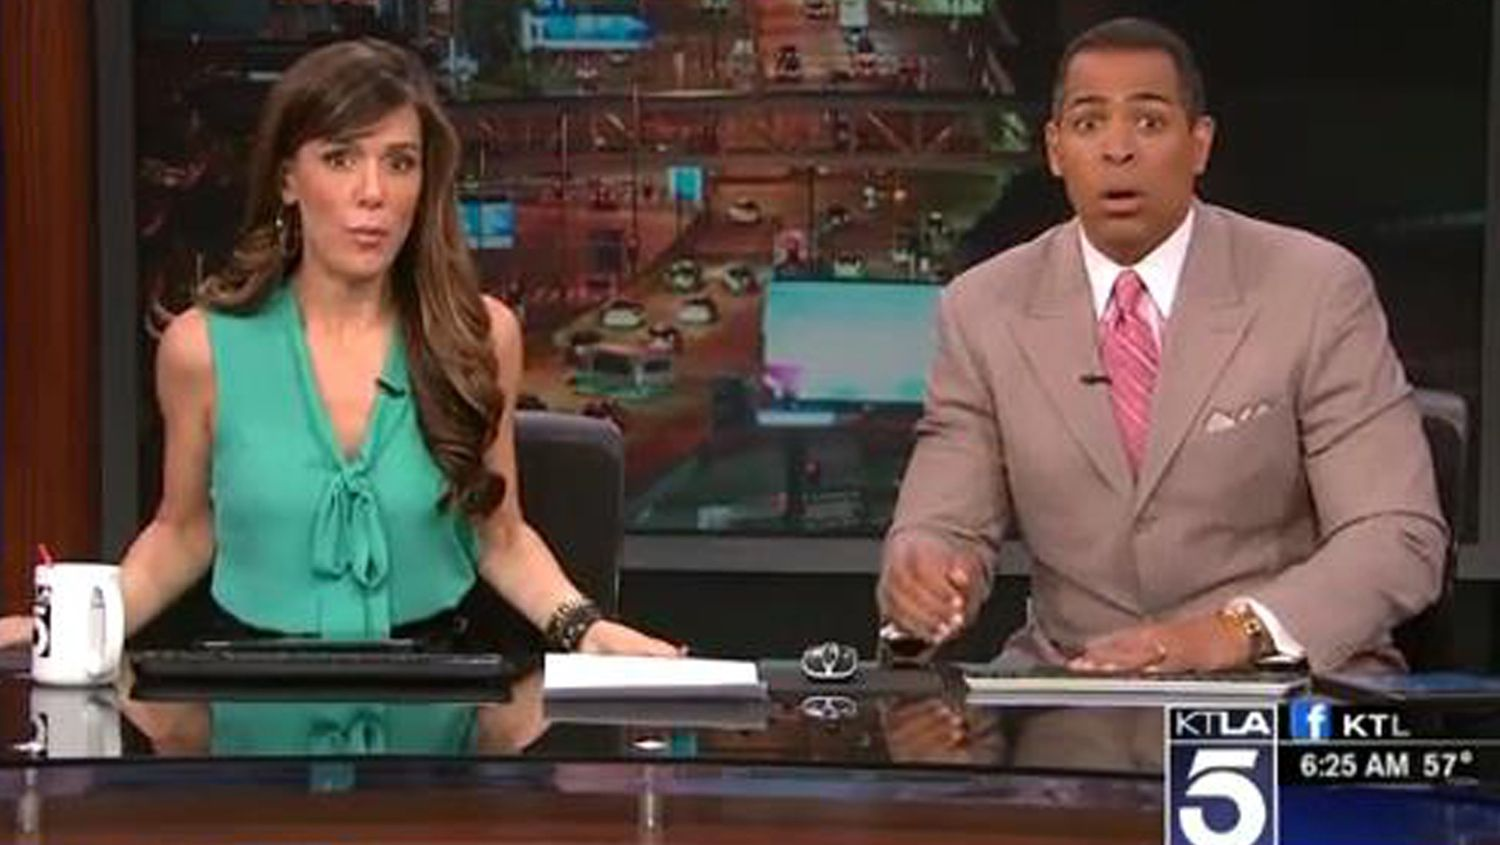 Los Angeles News Anchor Goes Full Earthquake Face During Morning Report News Anchor Bloopers Awkward Photos